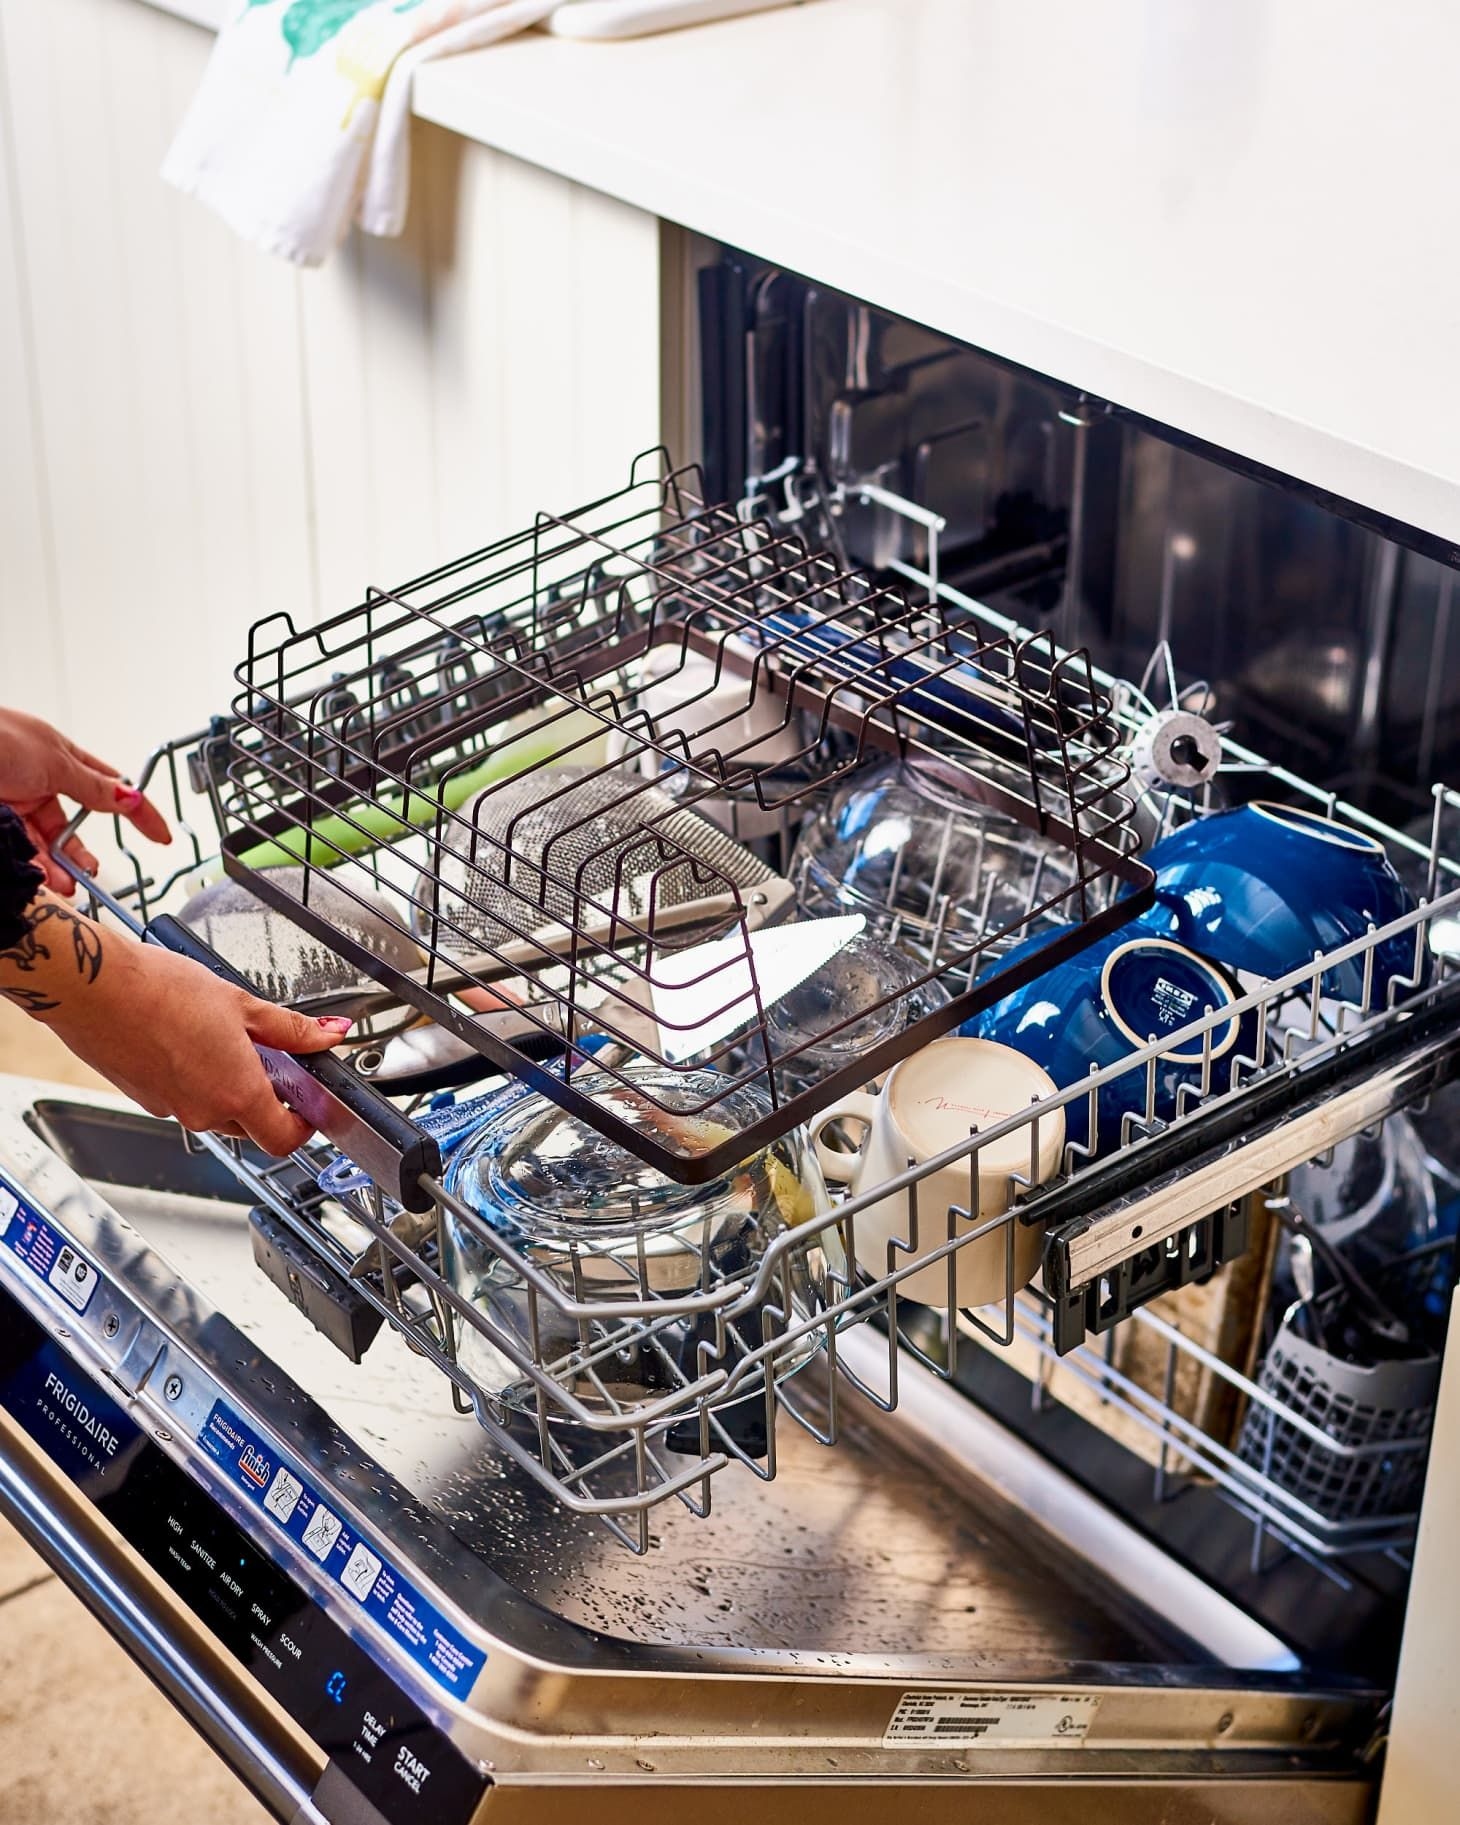 3 Easy But Overlooked Things Everyone Should Clean This Weekend Cleaning Best Dishwasher Dishwasher